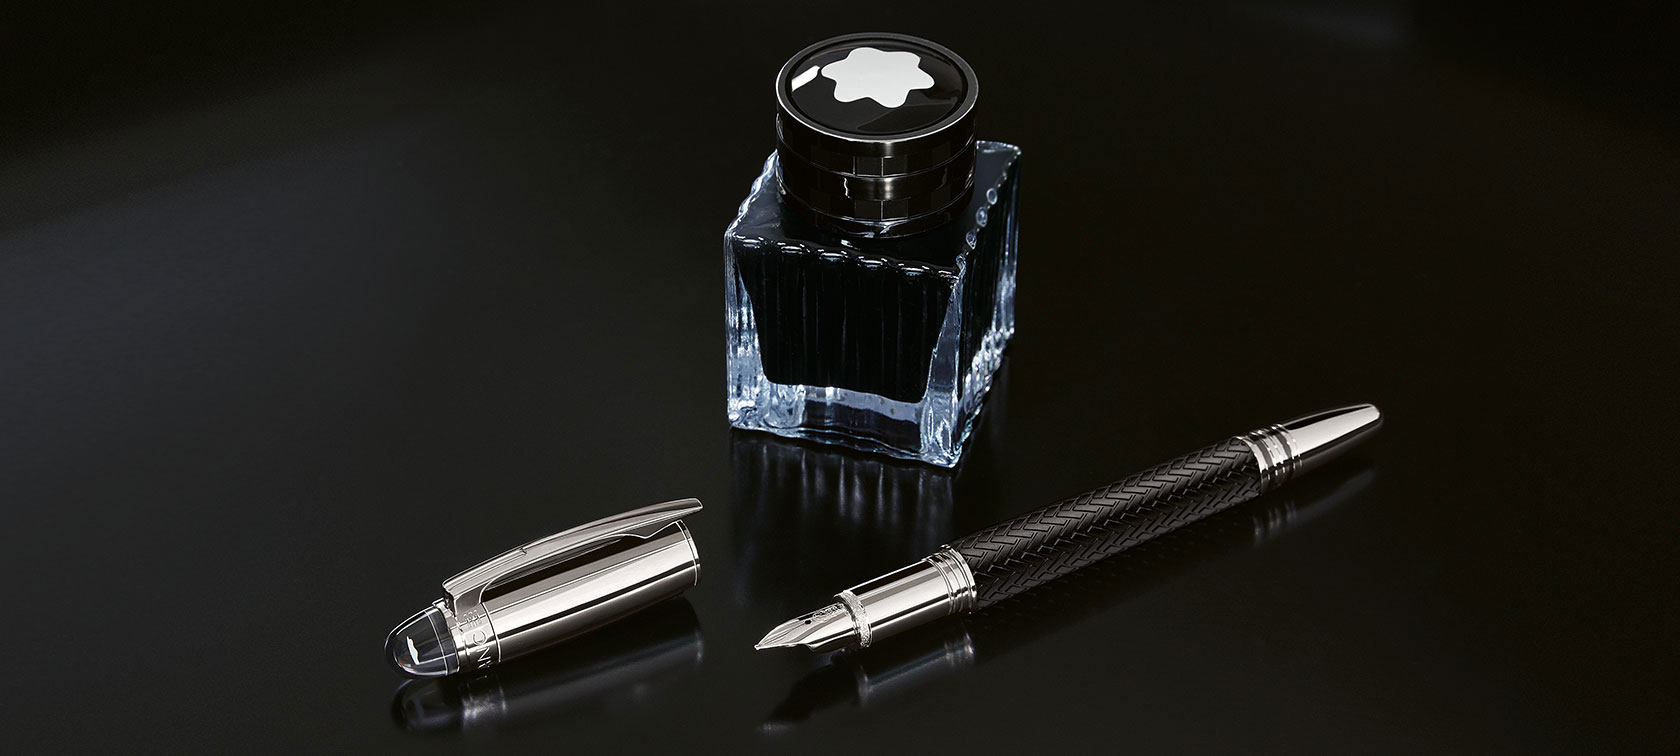 The Montblanc for BMW Fountain Pen is seen lying in front of the Montblanc for BMW Ink Bottle.